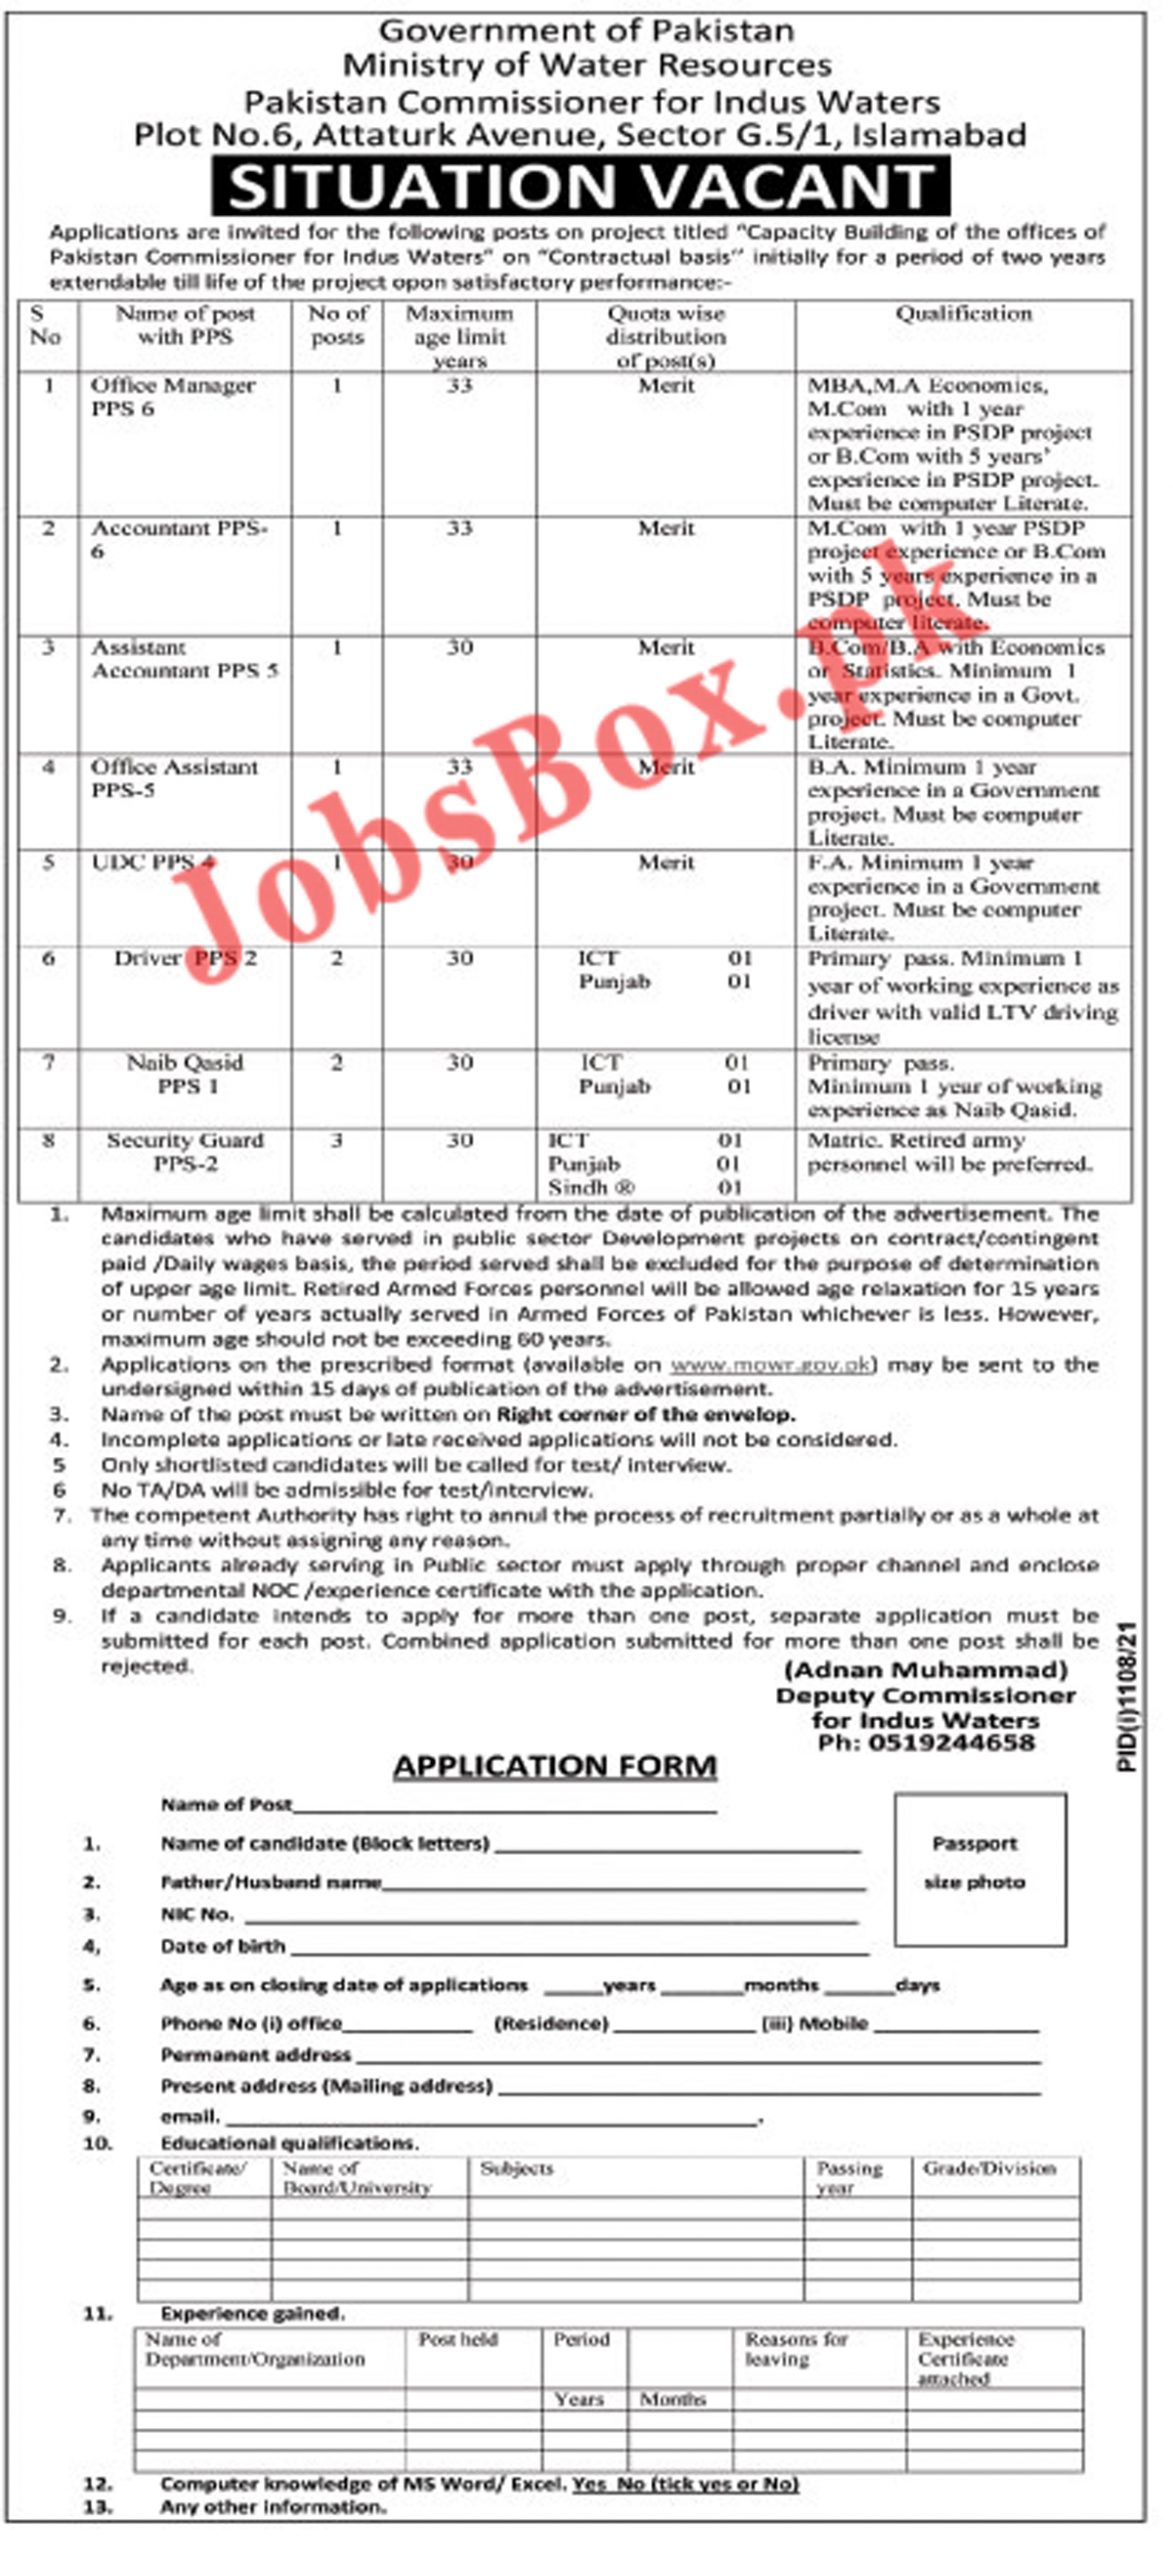 Ministry of Water Resources Jobs 2021 – Application Form via mowr.gov.pk